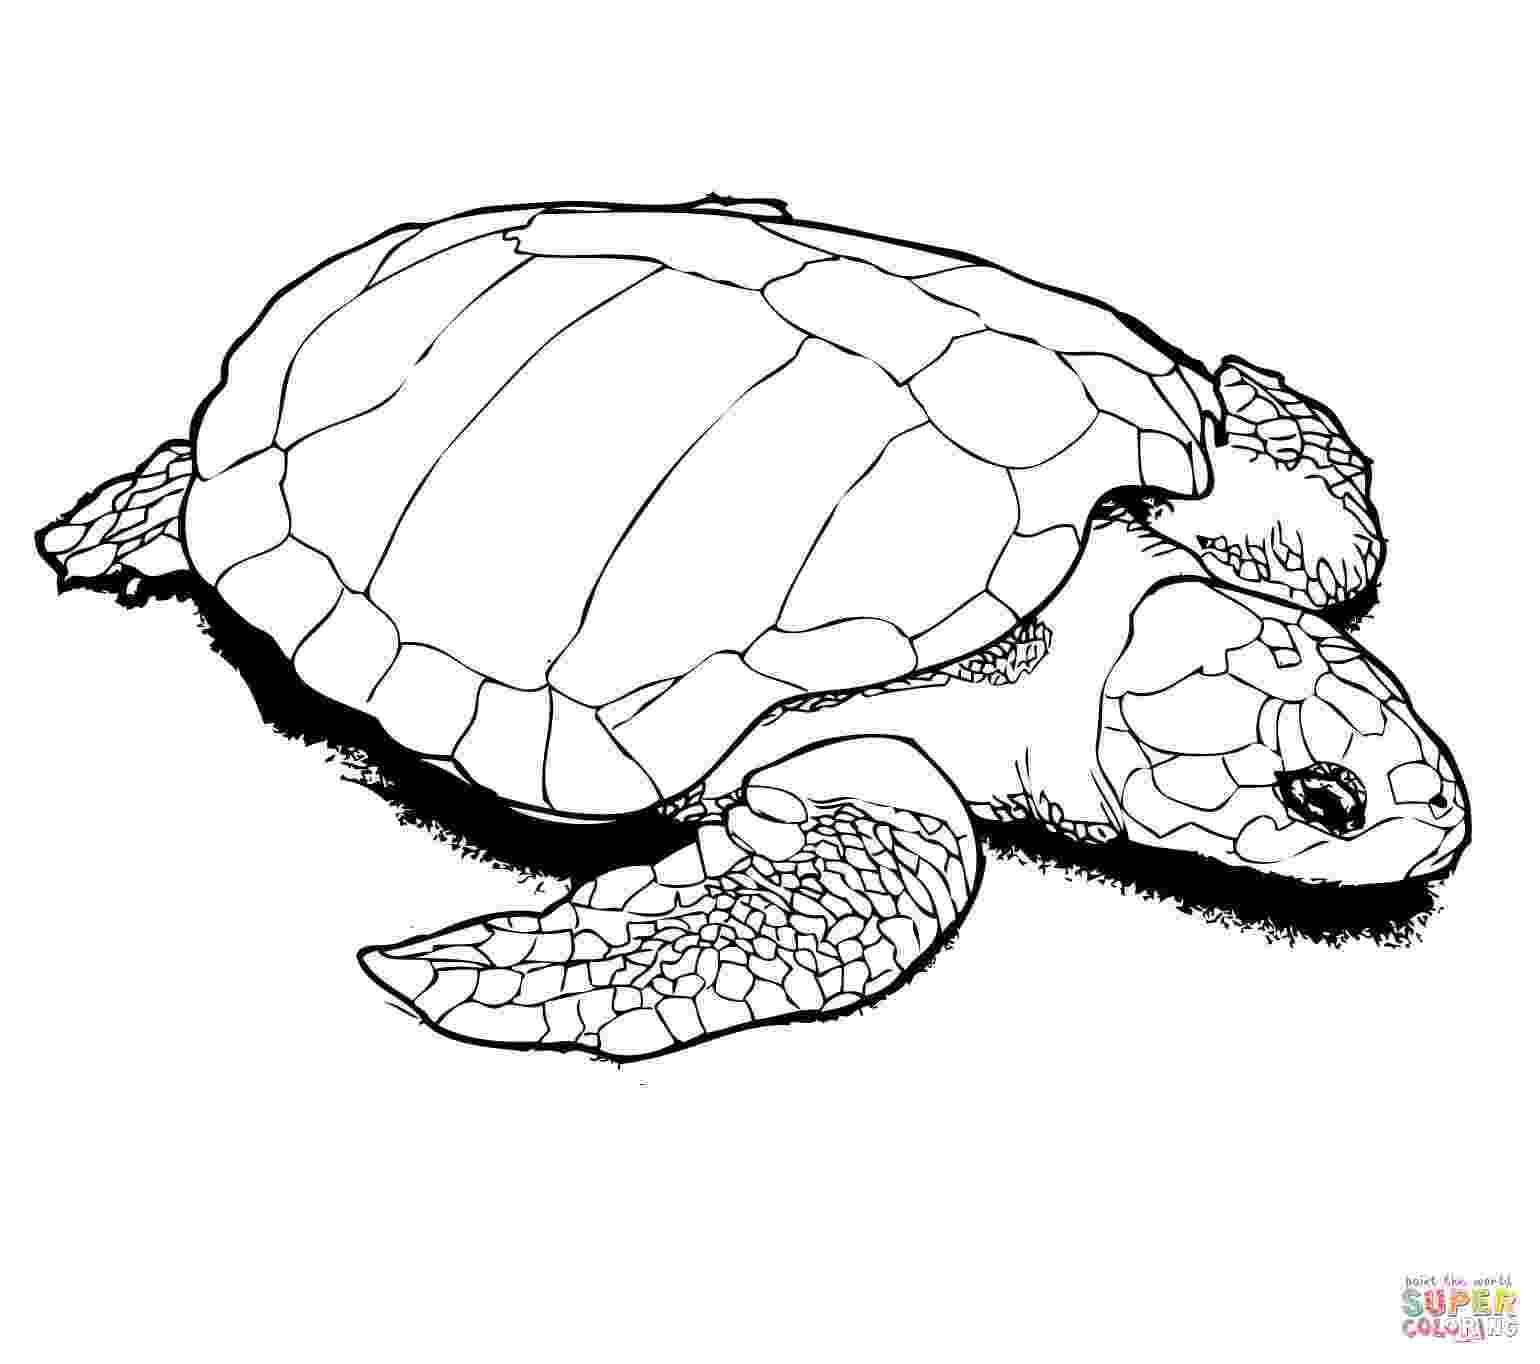 coloring pictures of turtles turtles to color for kids turtles kids coloring pages pictures turtles of coloring